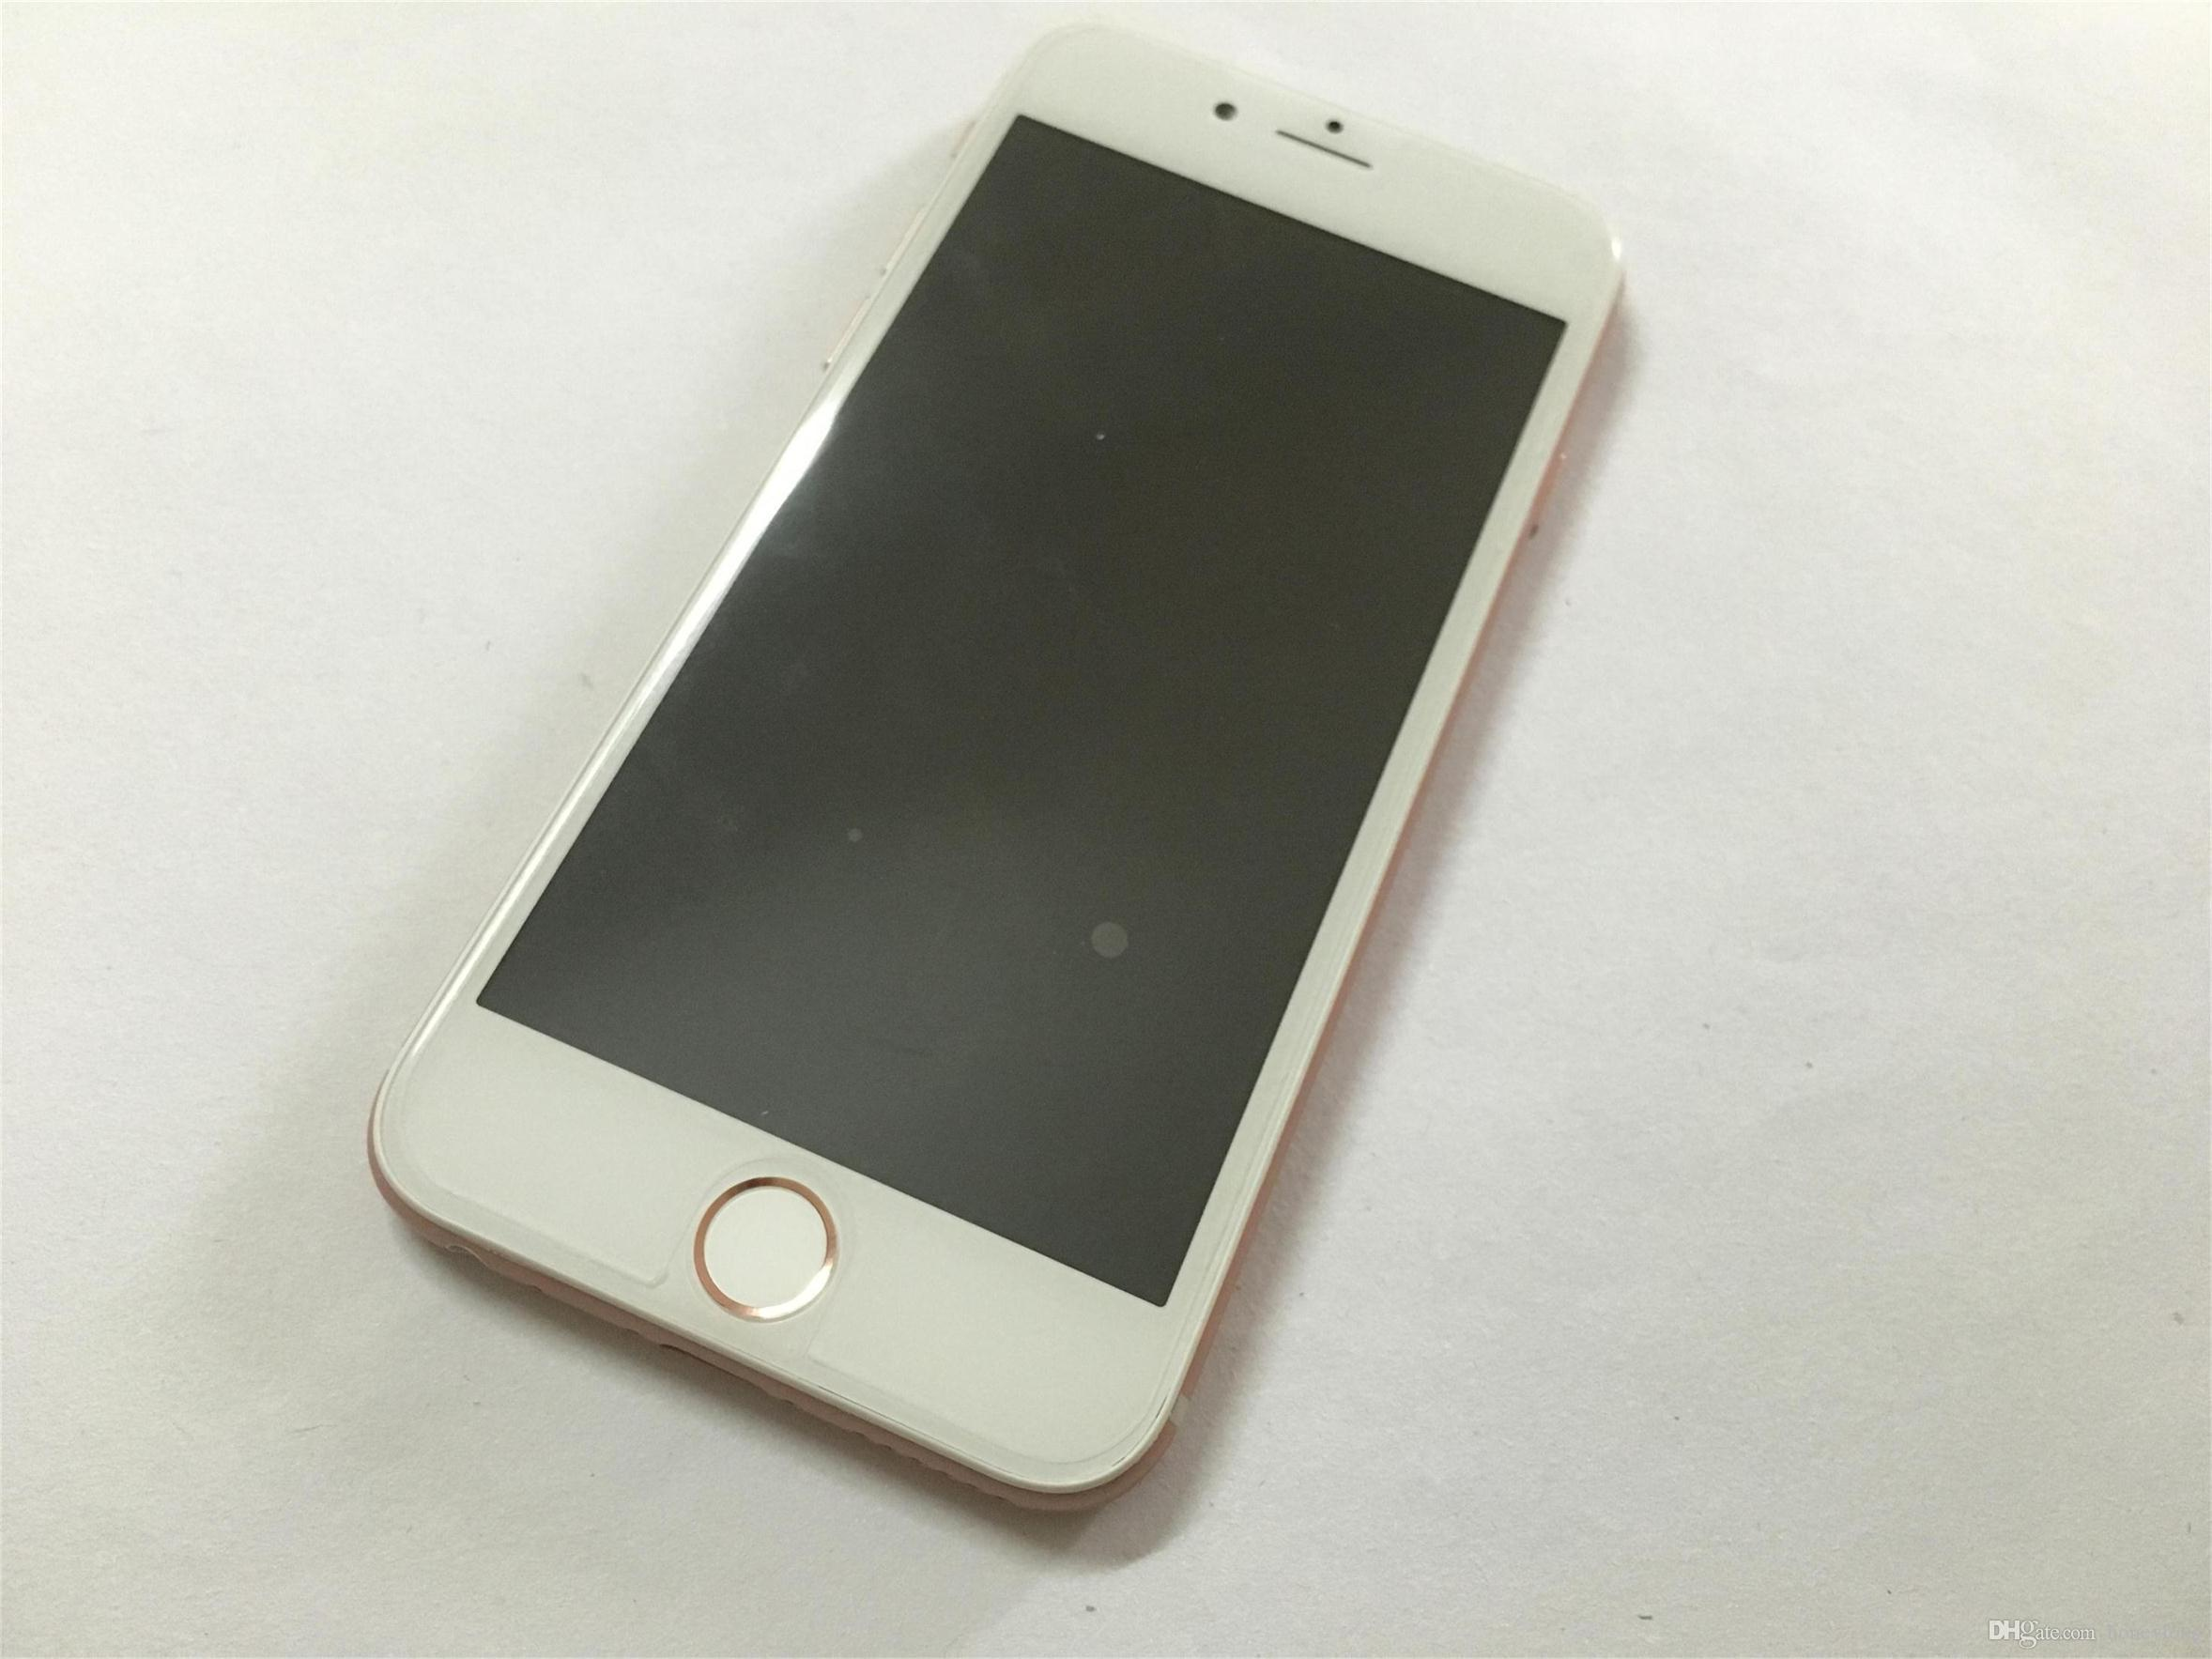 Camera 4.7 Android Phone 4 7inch goophone i7 dual core mtk6572 clone phone show 64b rom android 3g gps